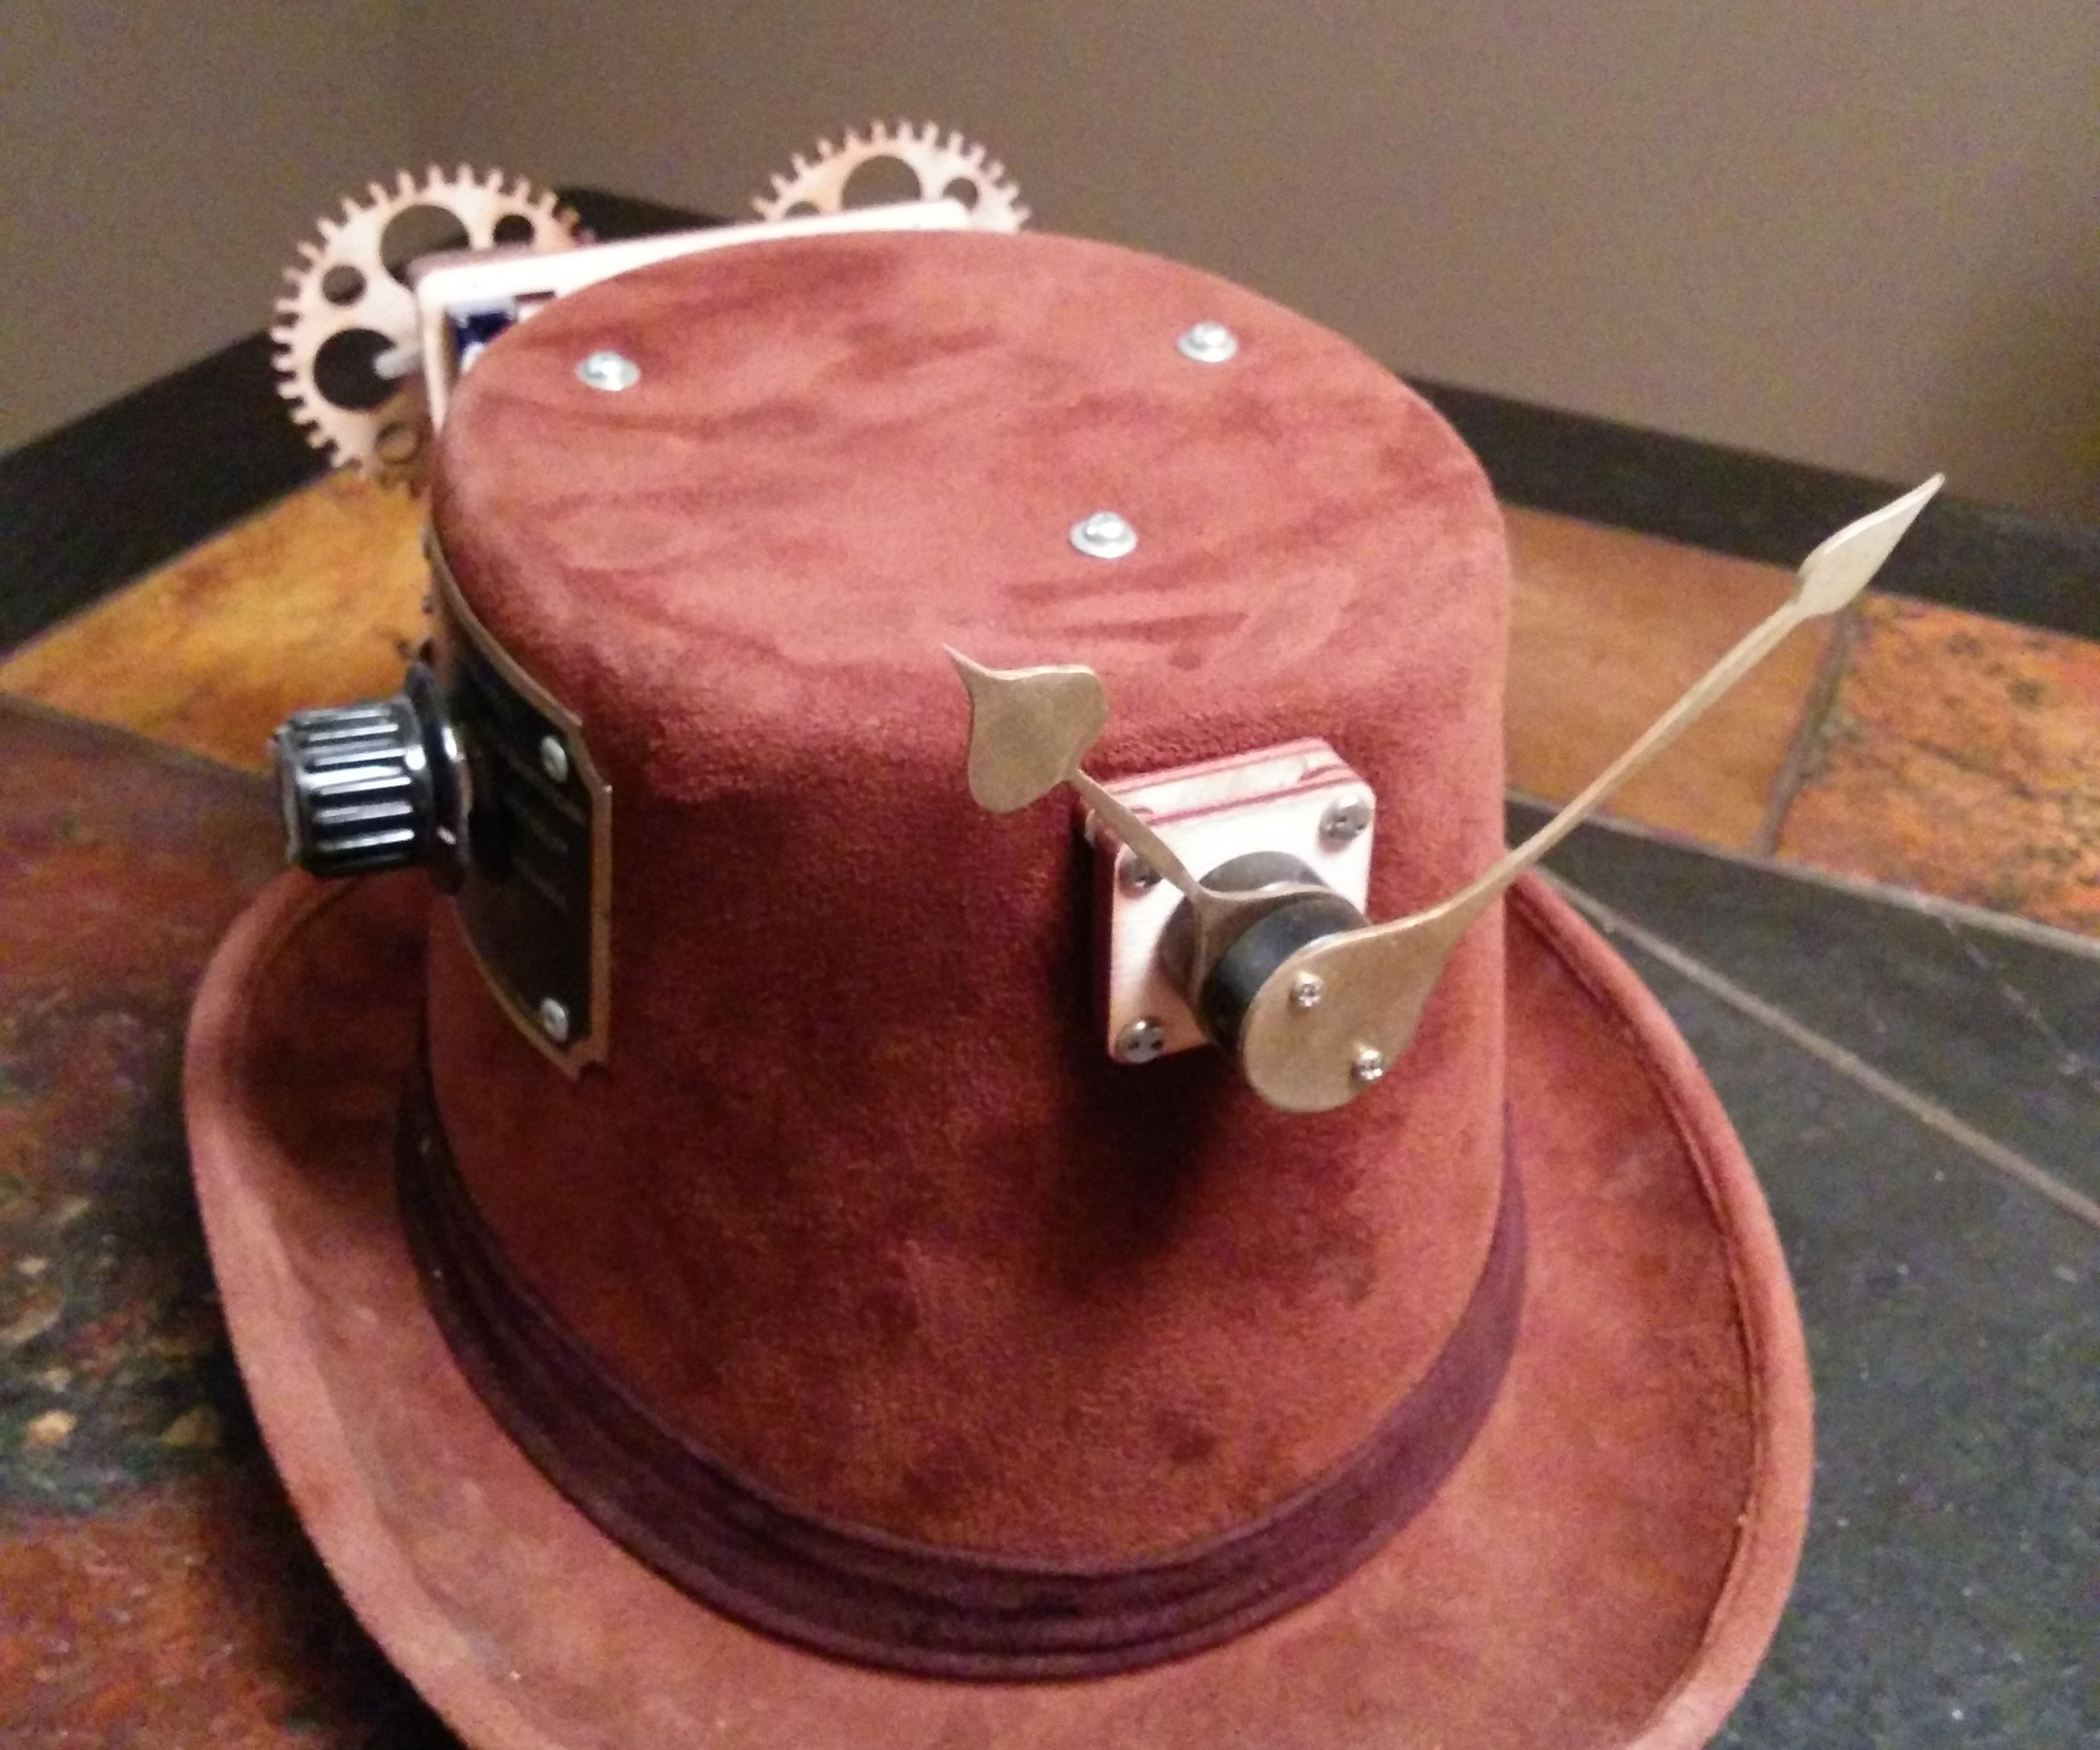 Hat-mounted clock with multiple timezone support and GPS functionality